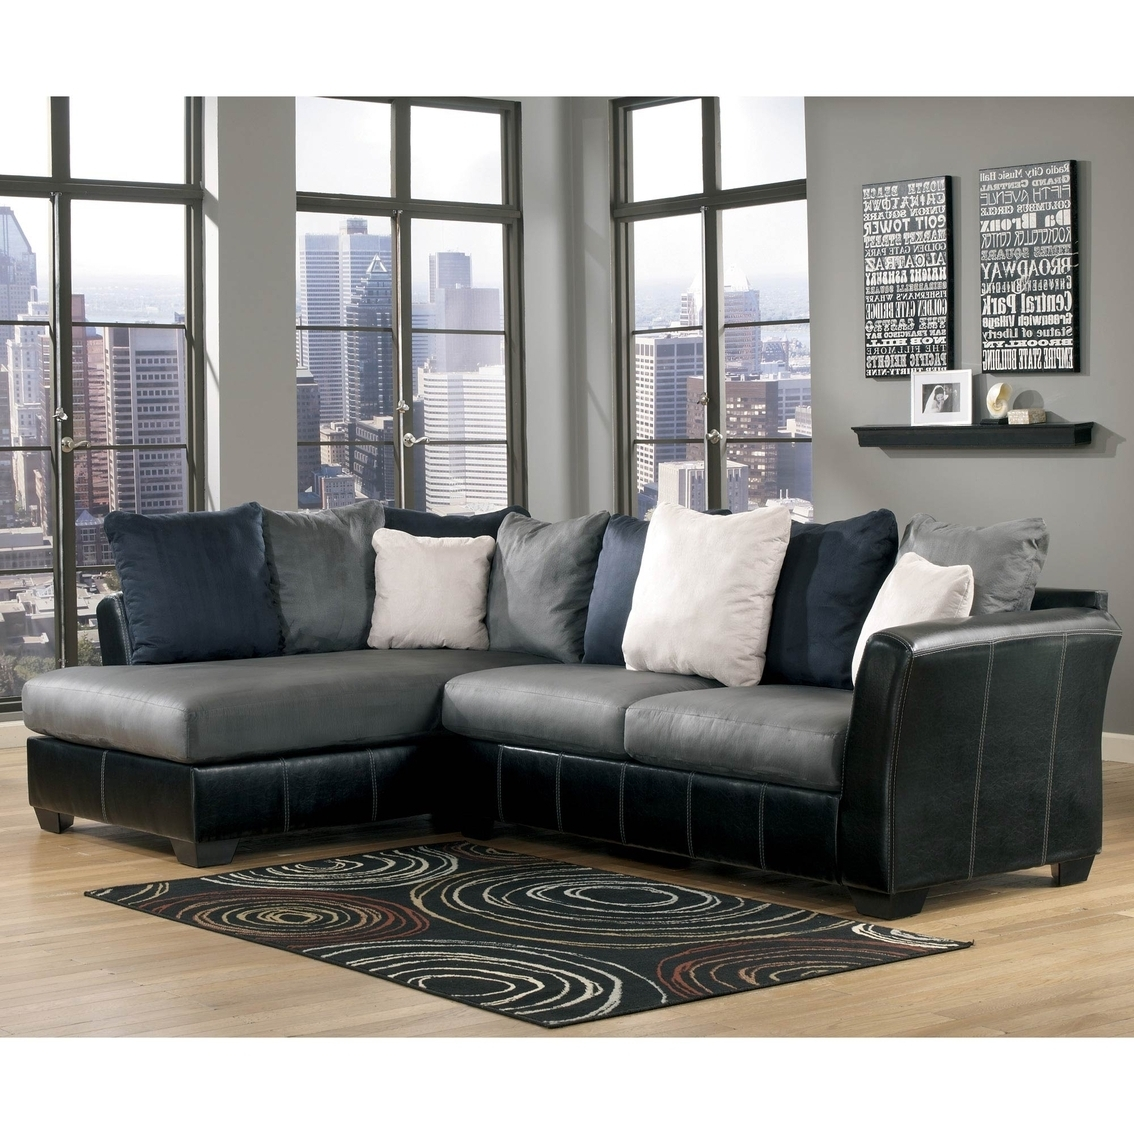 Ottawa Sectional Sofas In Favorite Ashley Sectional Sofa With Chaise – Hotelsbacau (View 4 of 15)